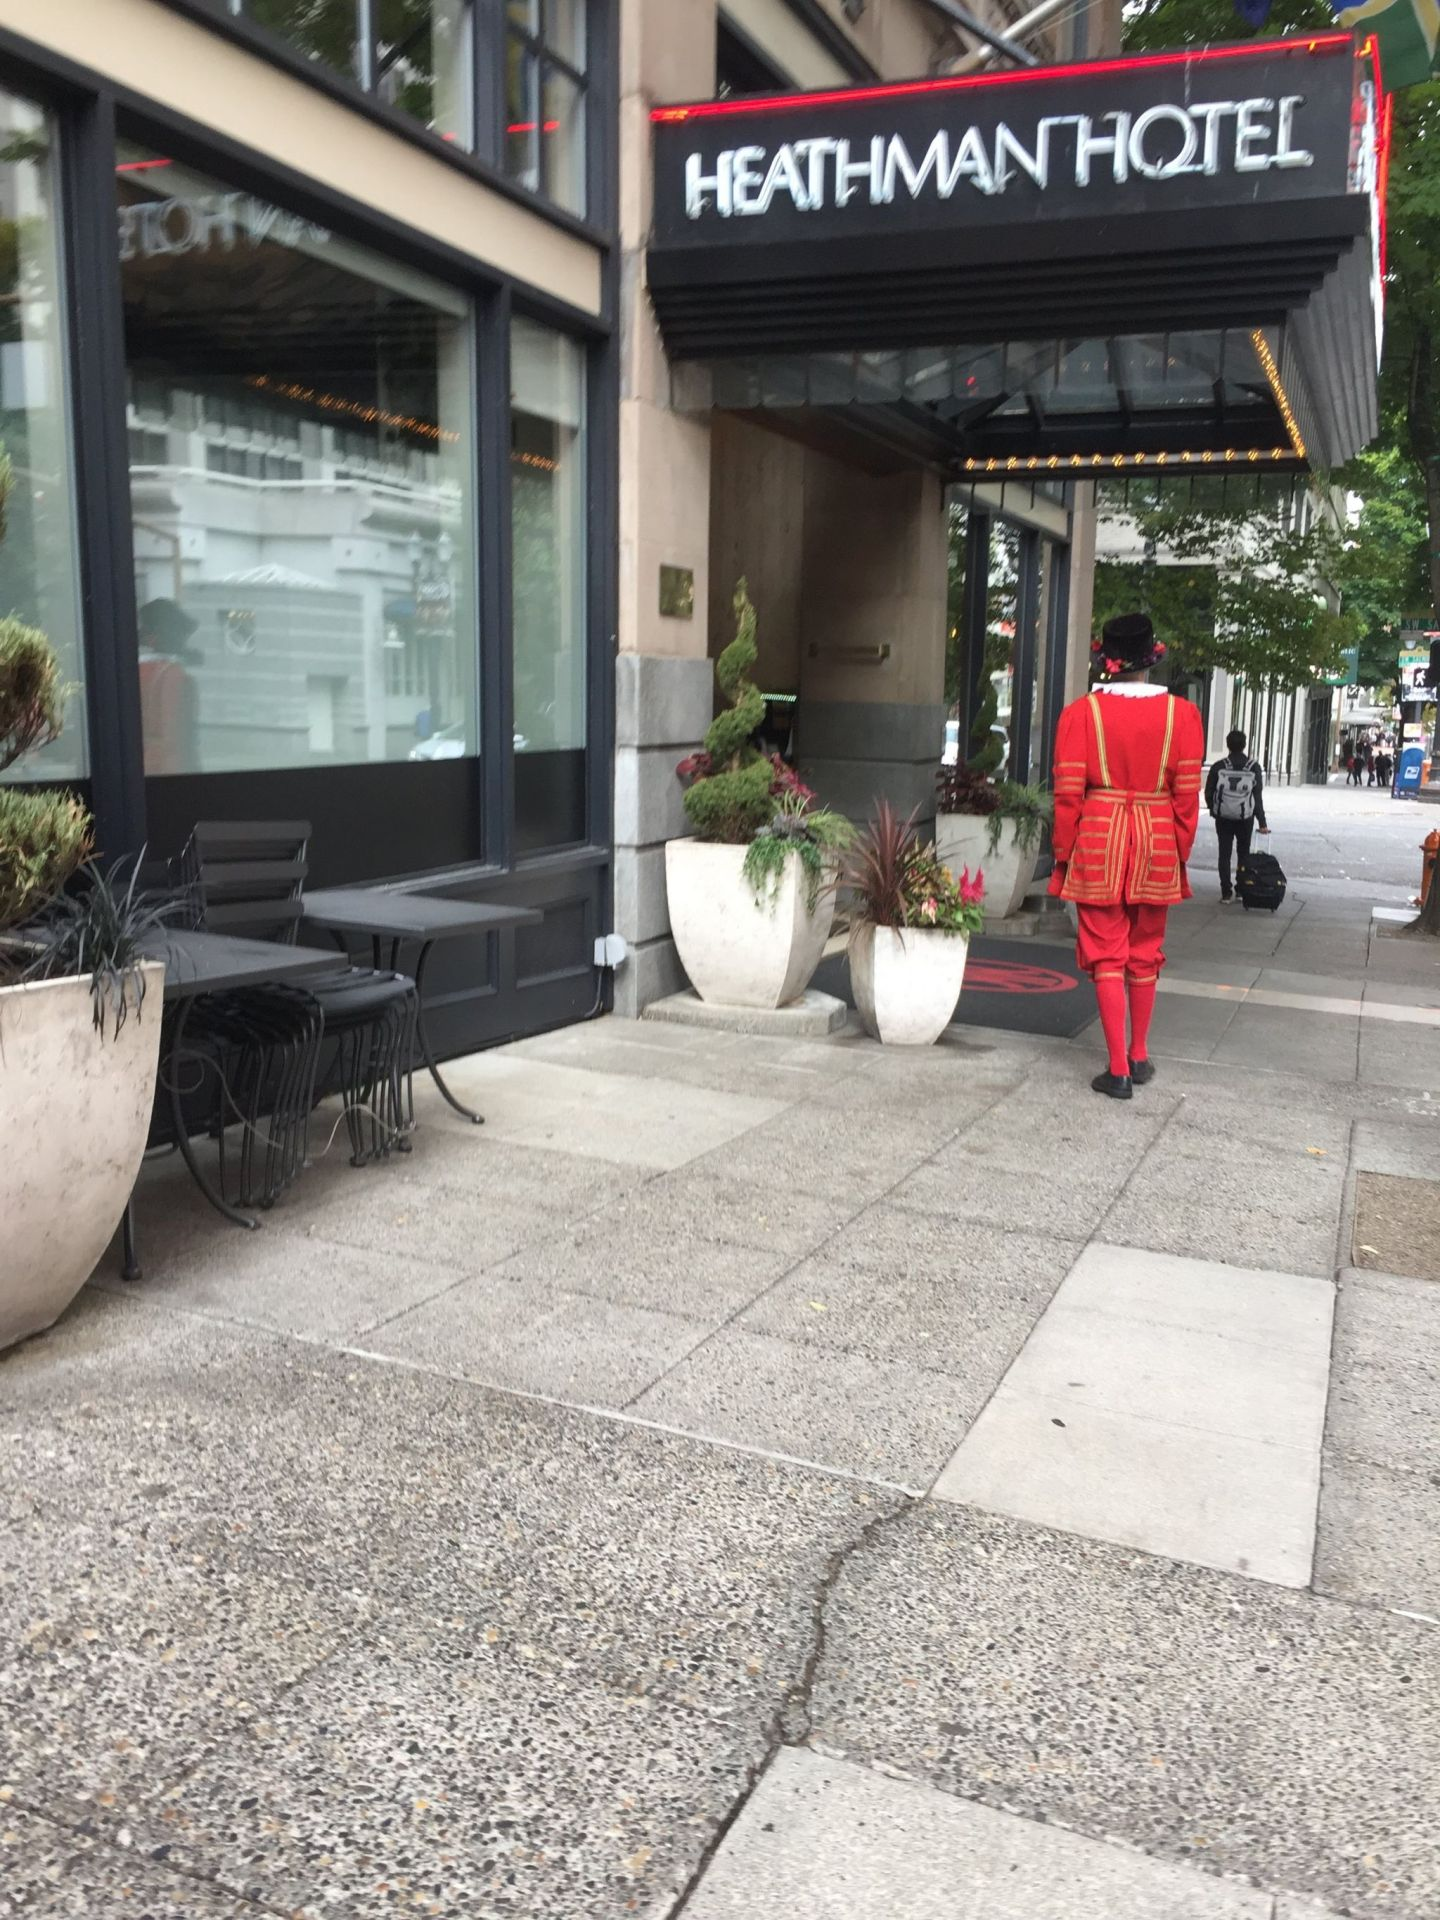 Beefeater at a hotel in Portland, Oregon